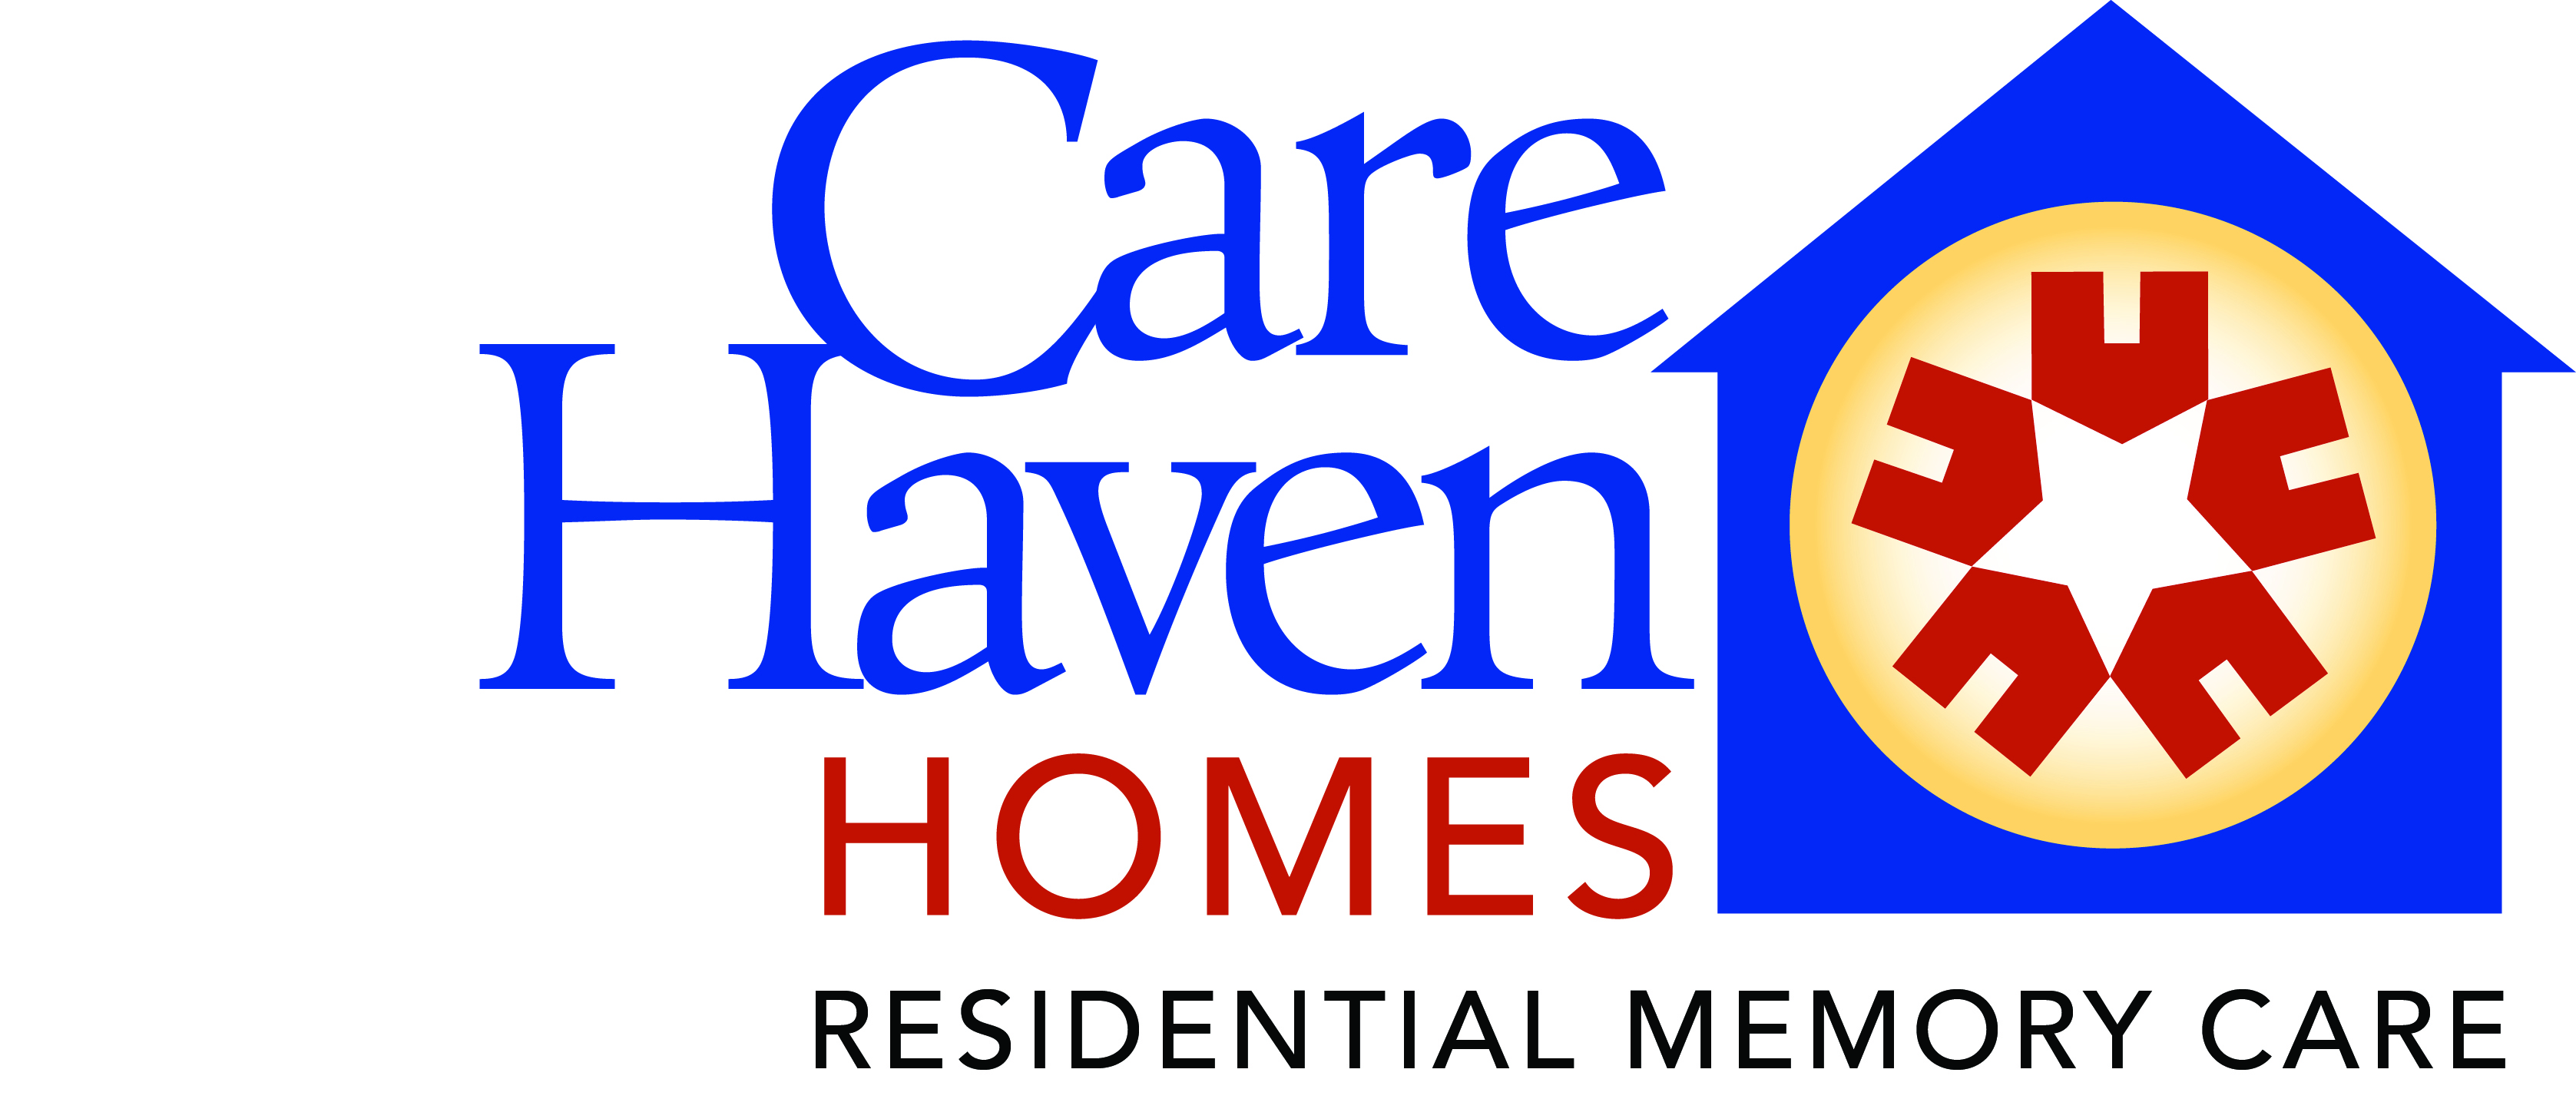 Care Haven